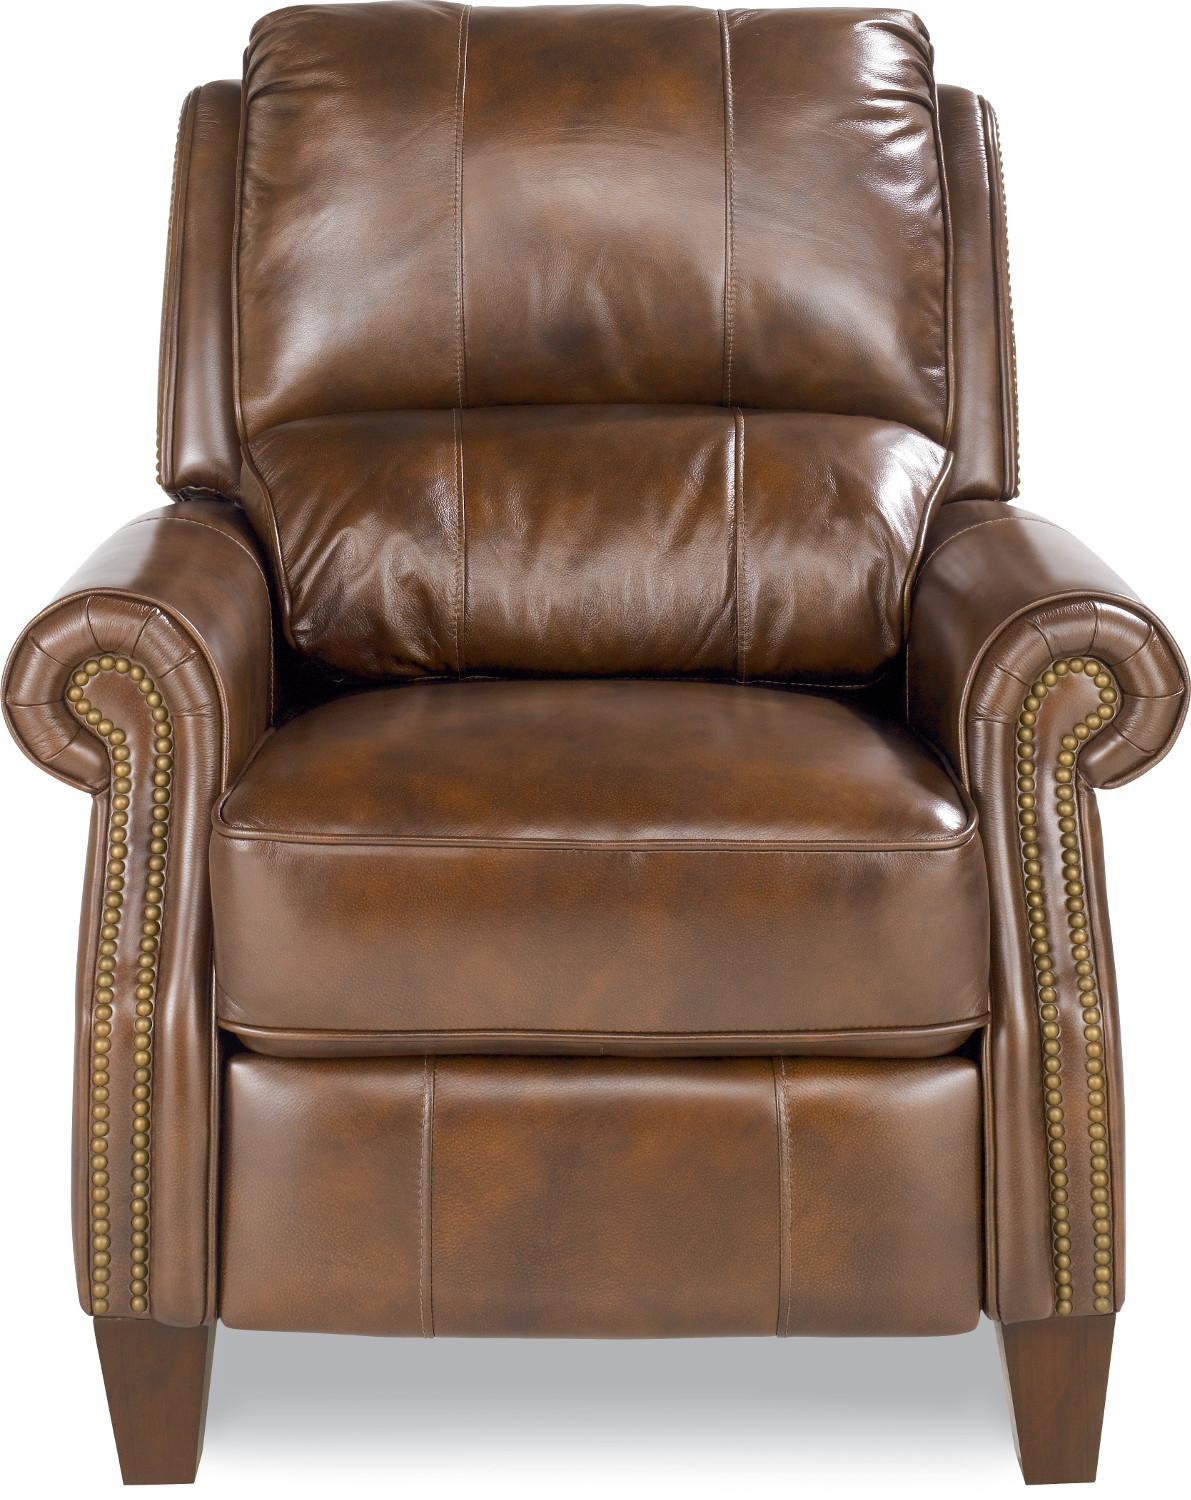 La-Z-Boy Recliners Tarleton Recliner  sc 1 st  Mooreu0027s Home Furnishings & La-Z-Boy Recliners Tarleton Recliner | Mooreu0027s Home Furnishings ... islam-shia.org